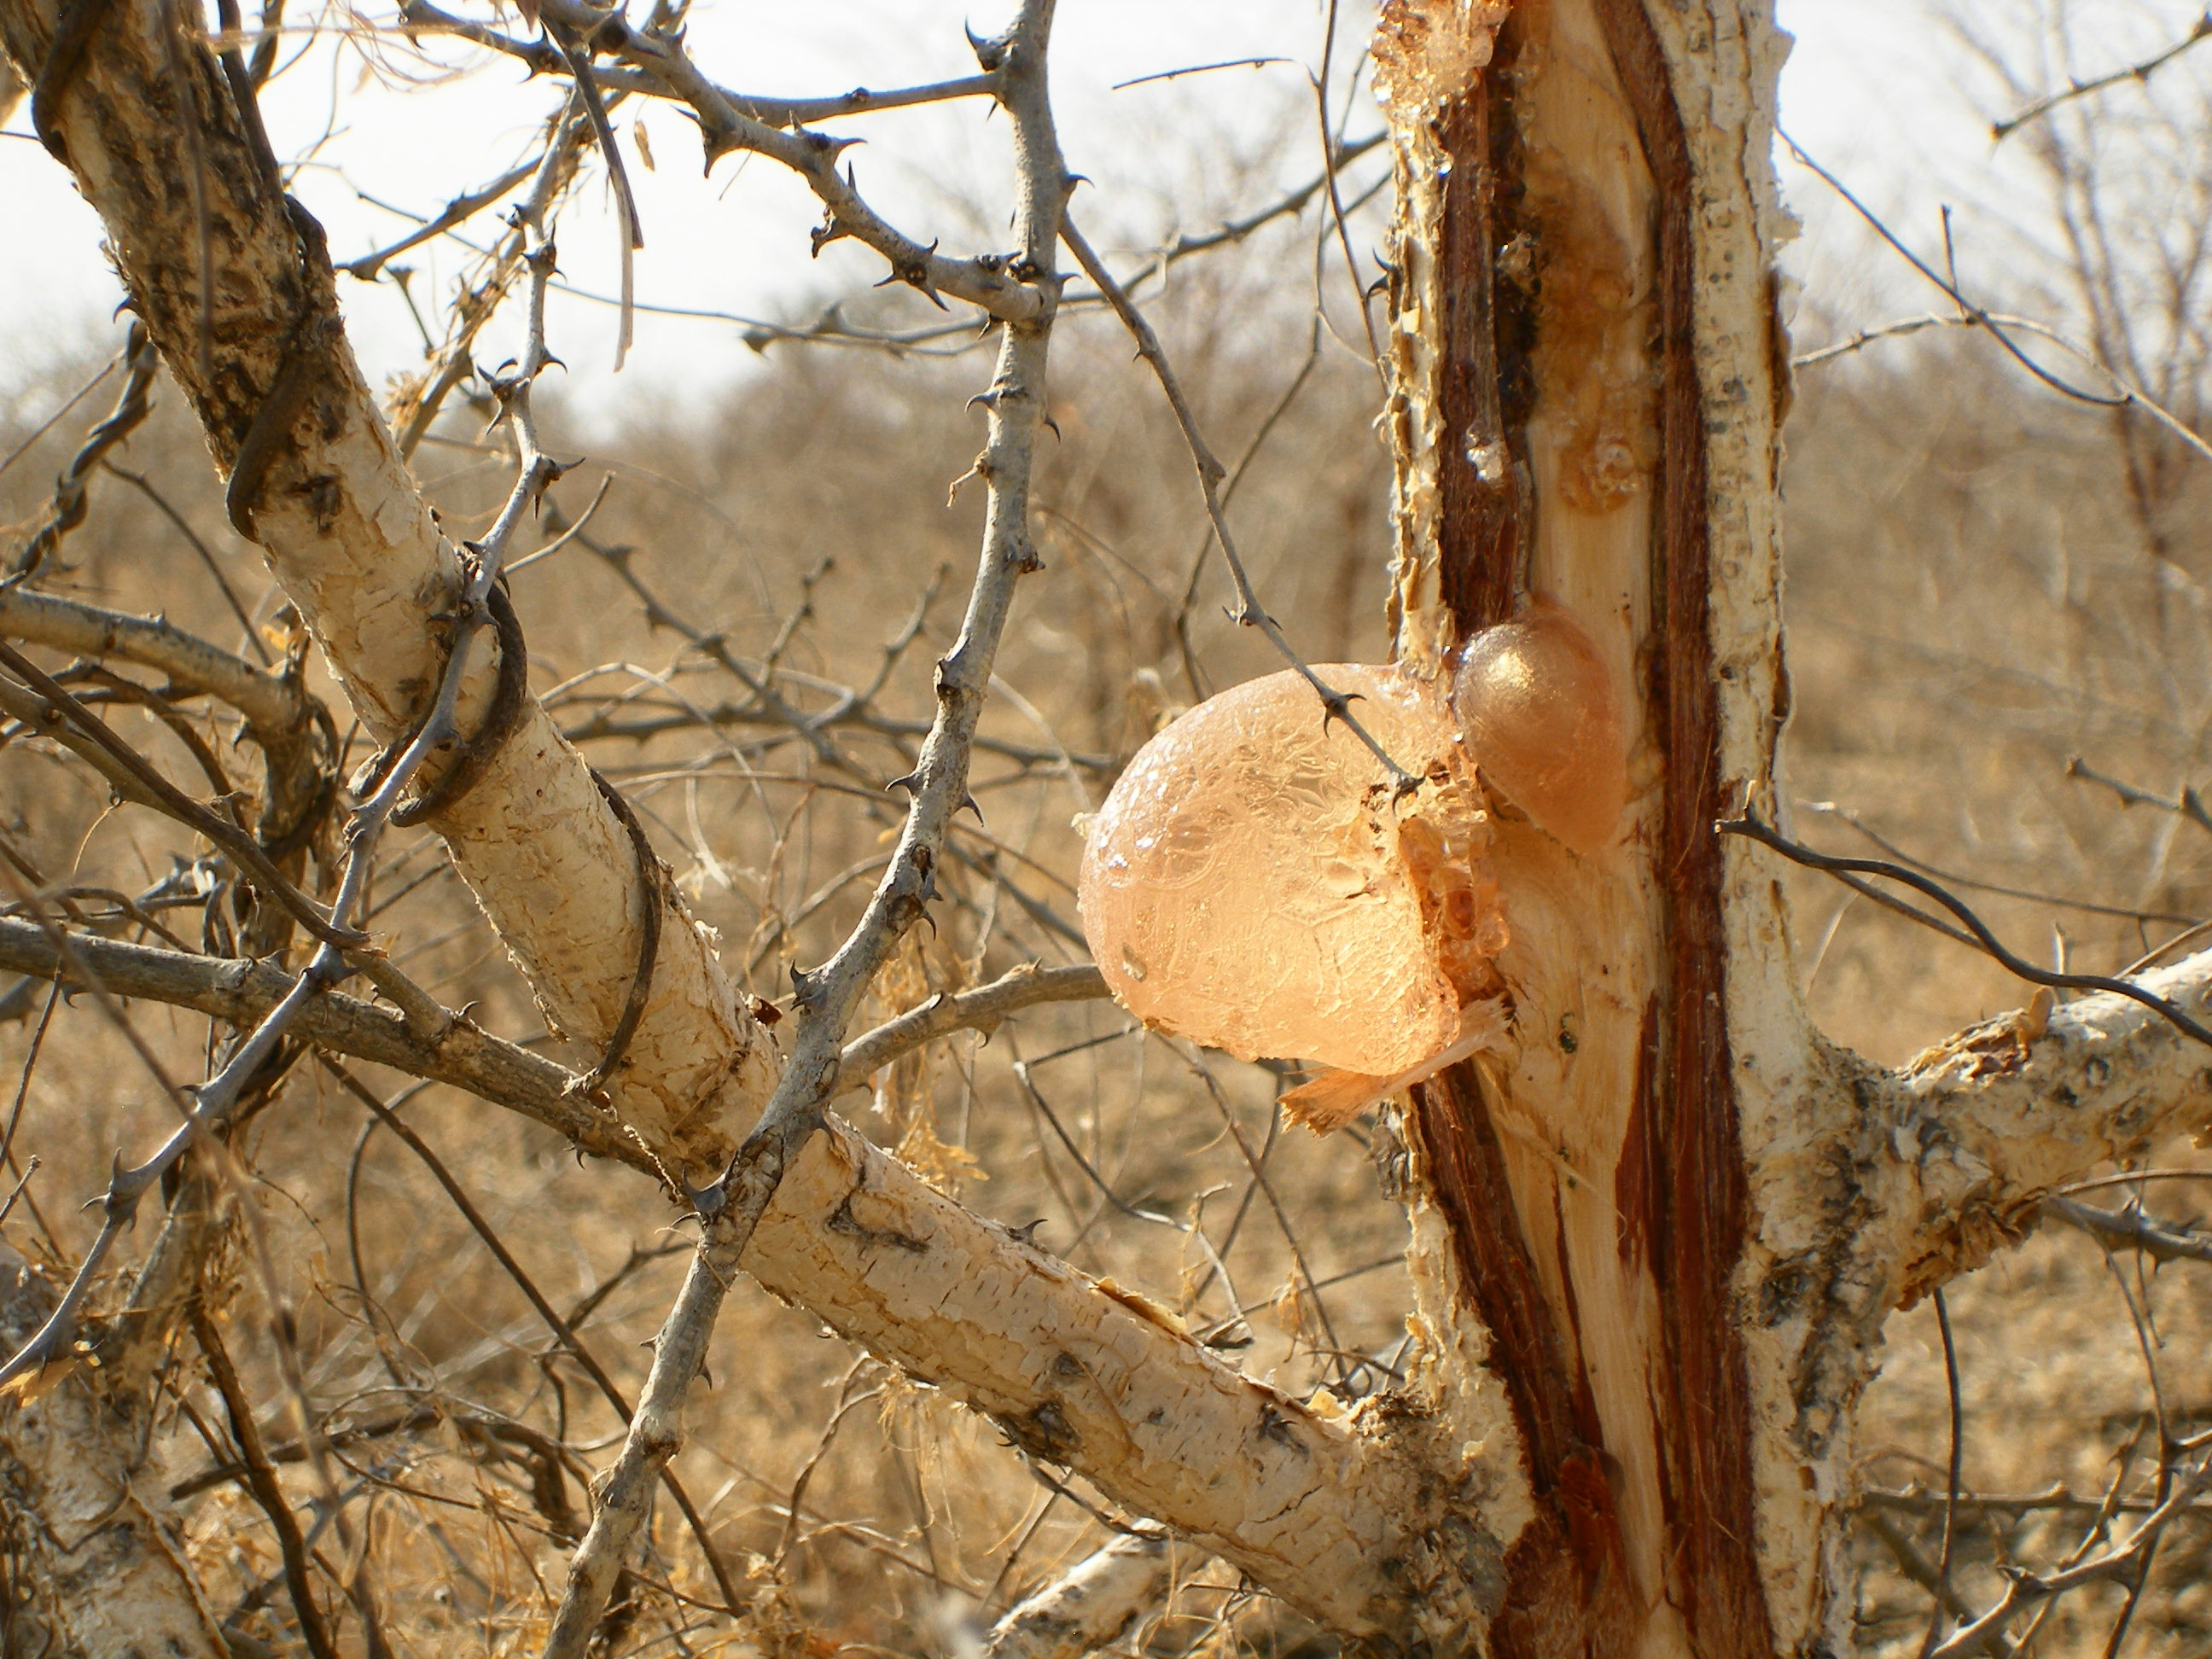 Acacia Gum An Important Social Economic And Environmental Role For